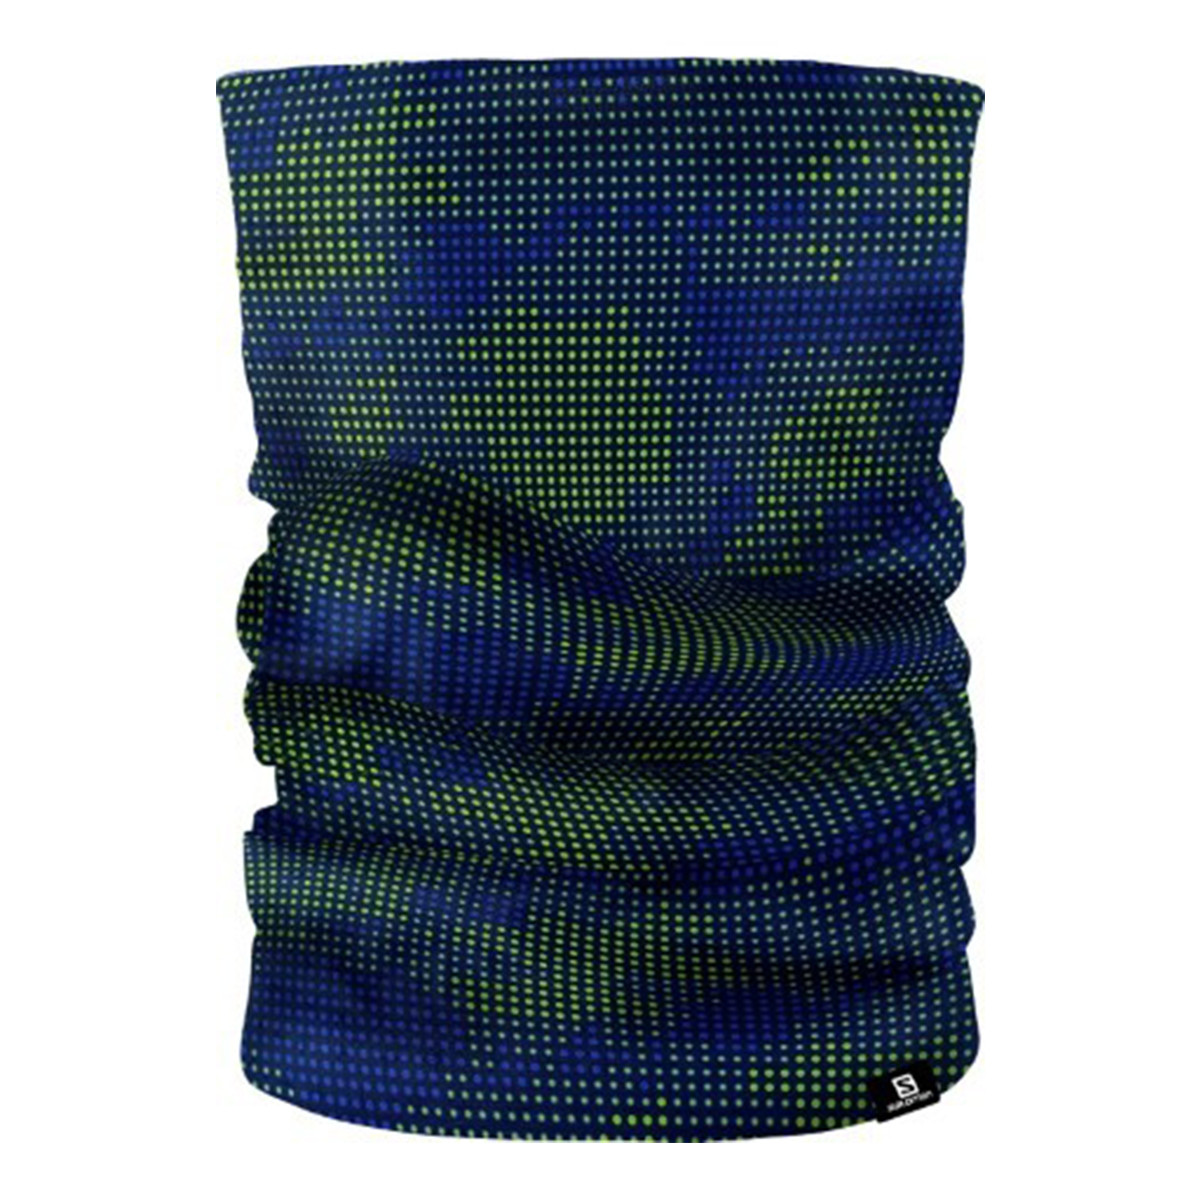 Bandana (Neck Tube) - Salomon